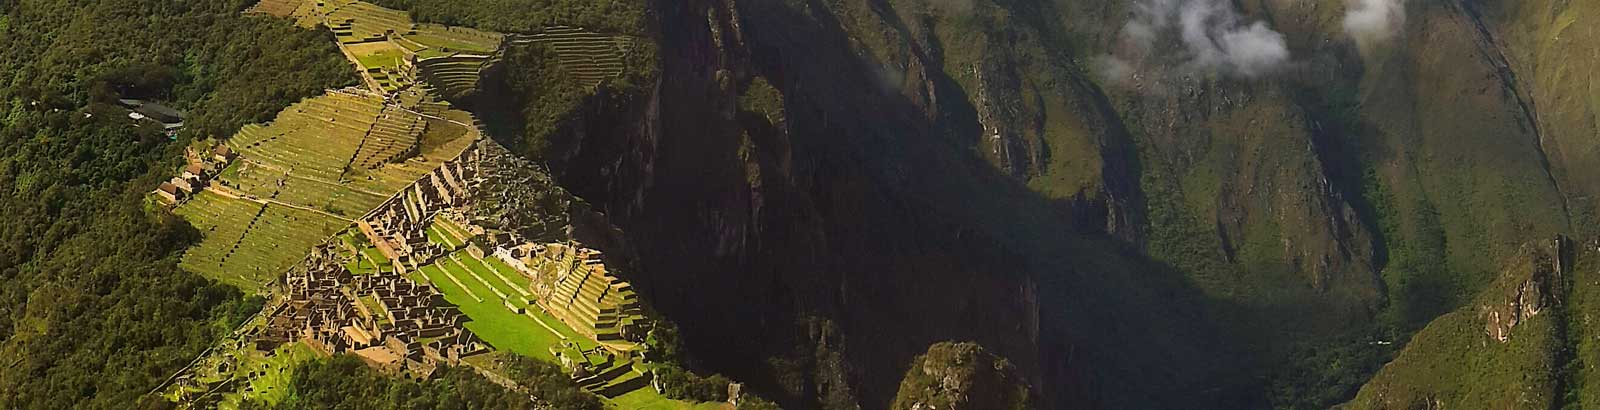 View of Machu Picchu ruins, surrounded by the clouf forest, from the top of Huayna Picchu Mountain